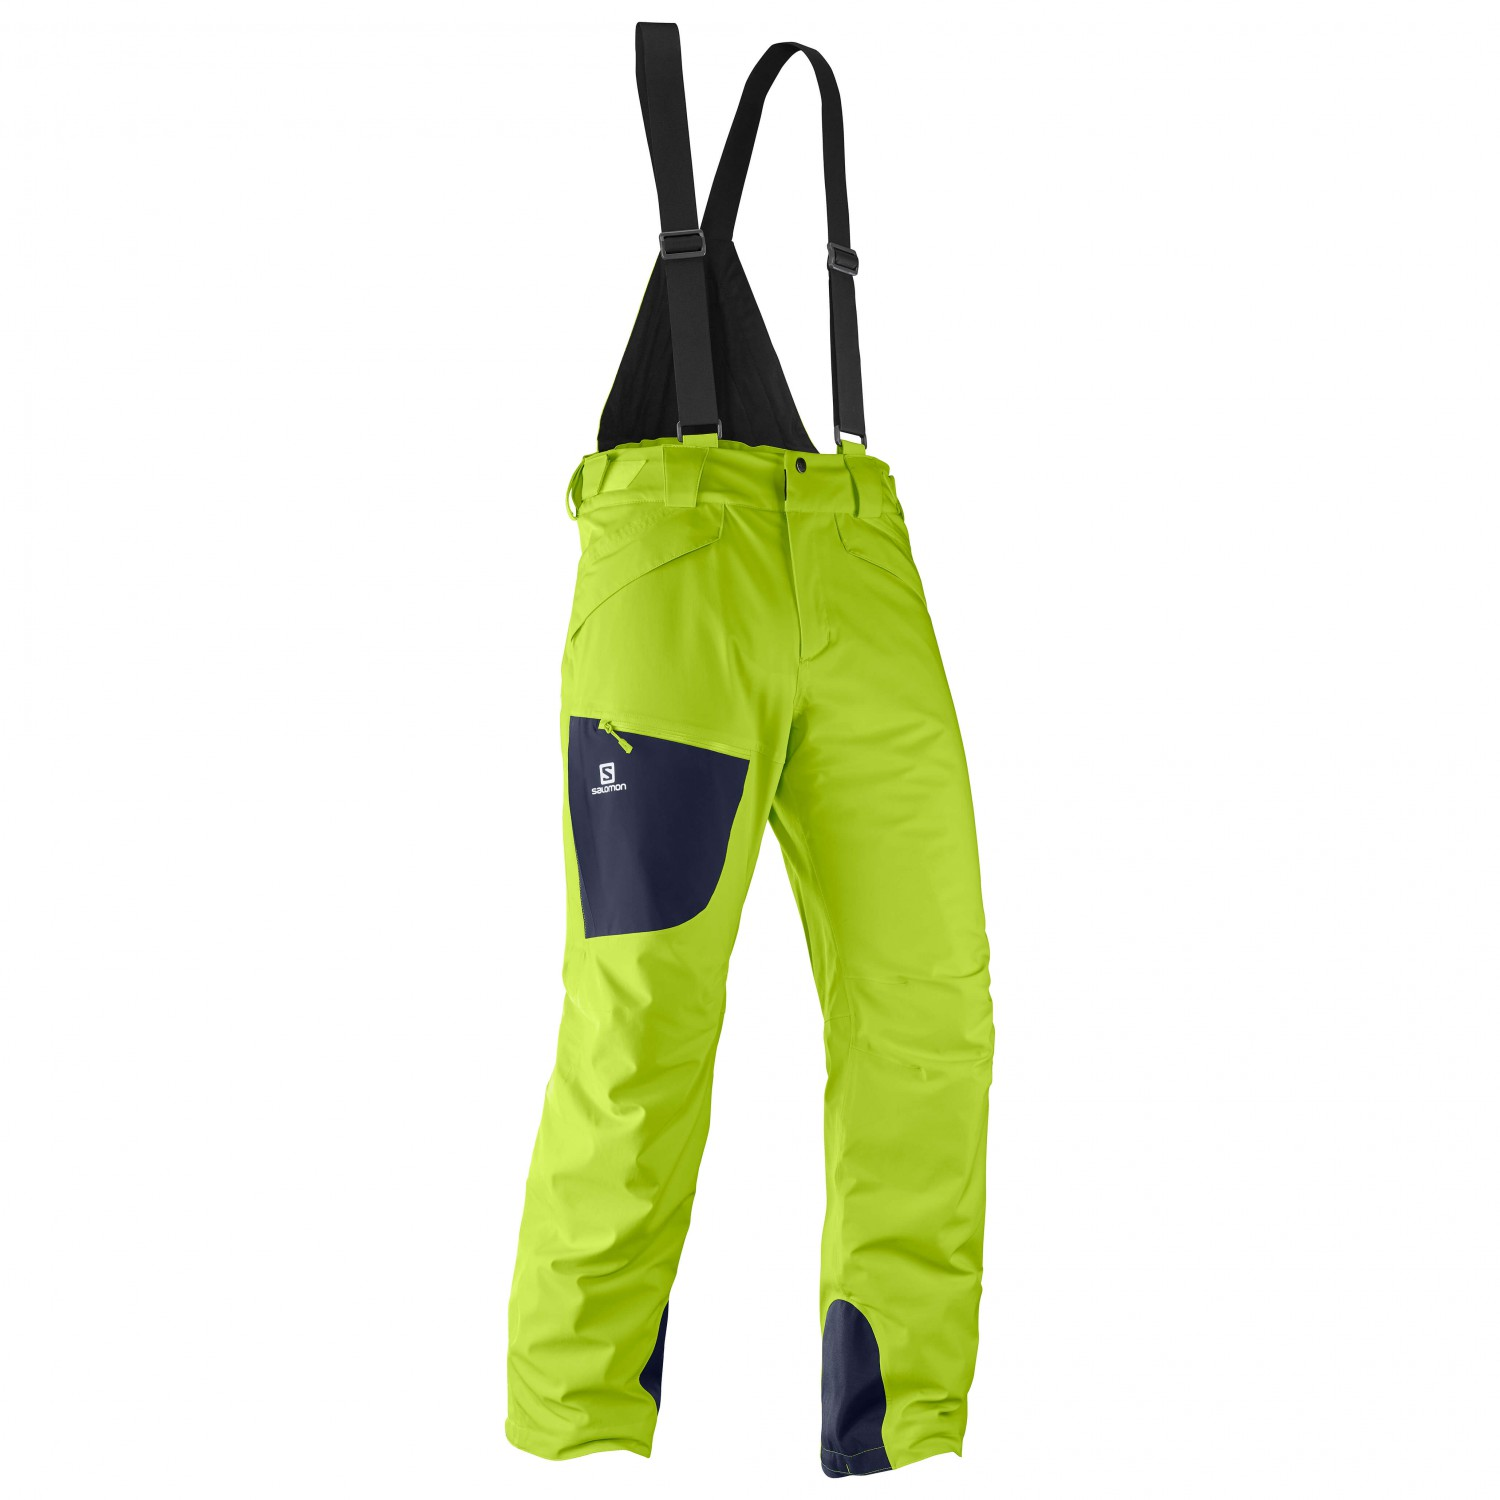 Salomon Chill Out Bib Pant Skihose hcJqb